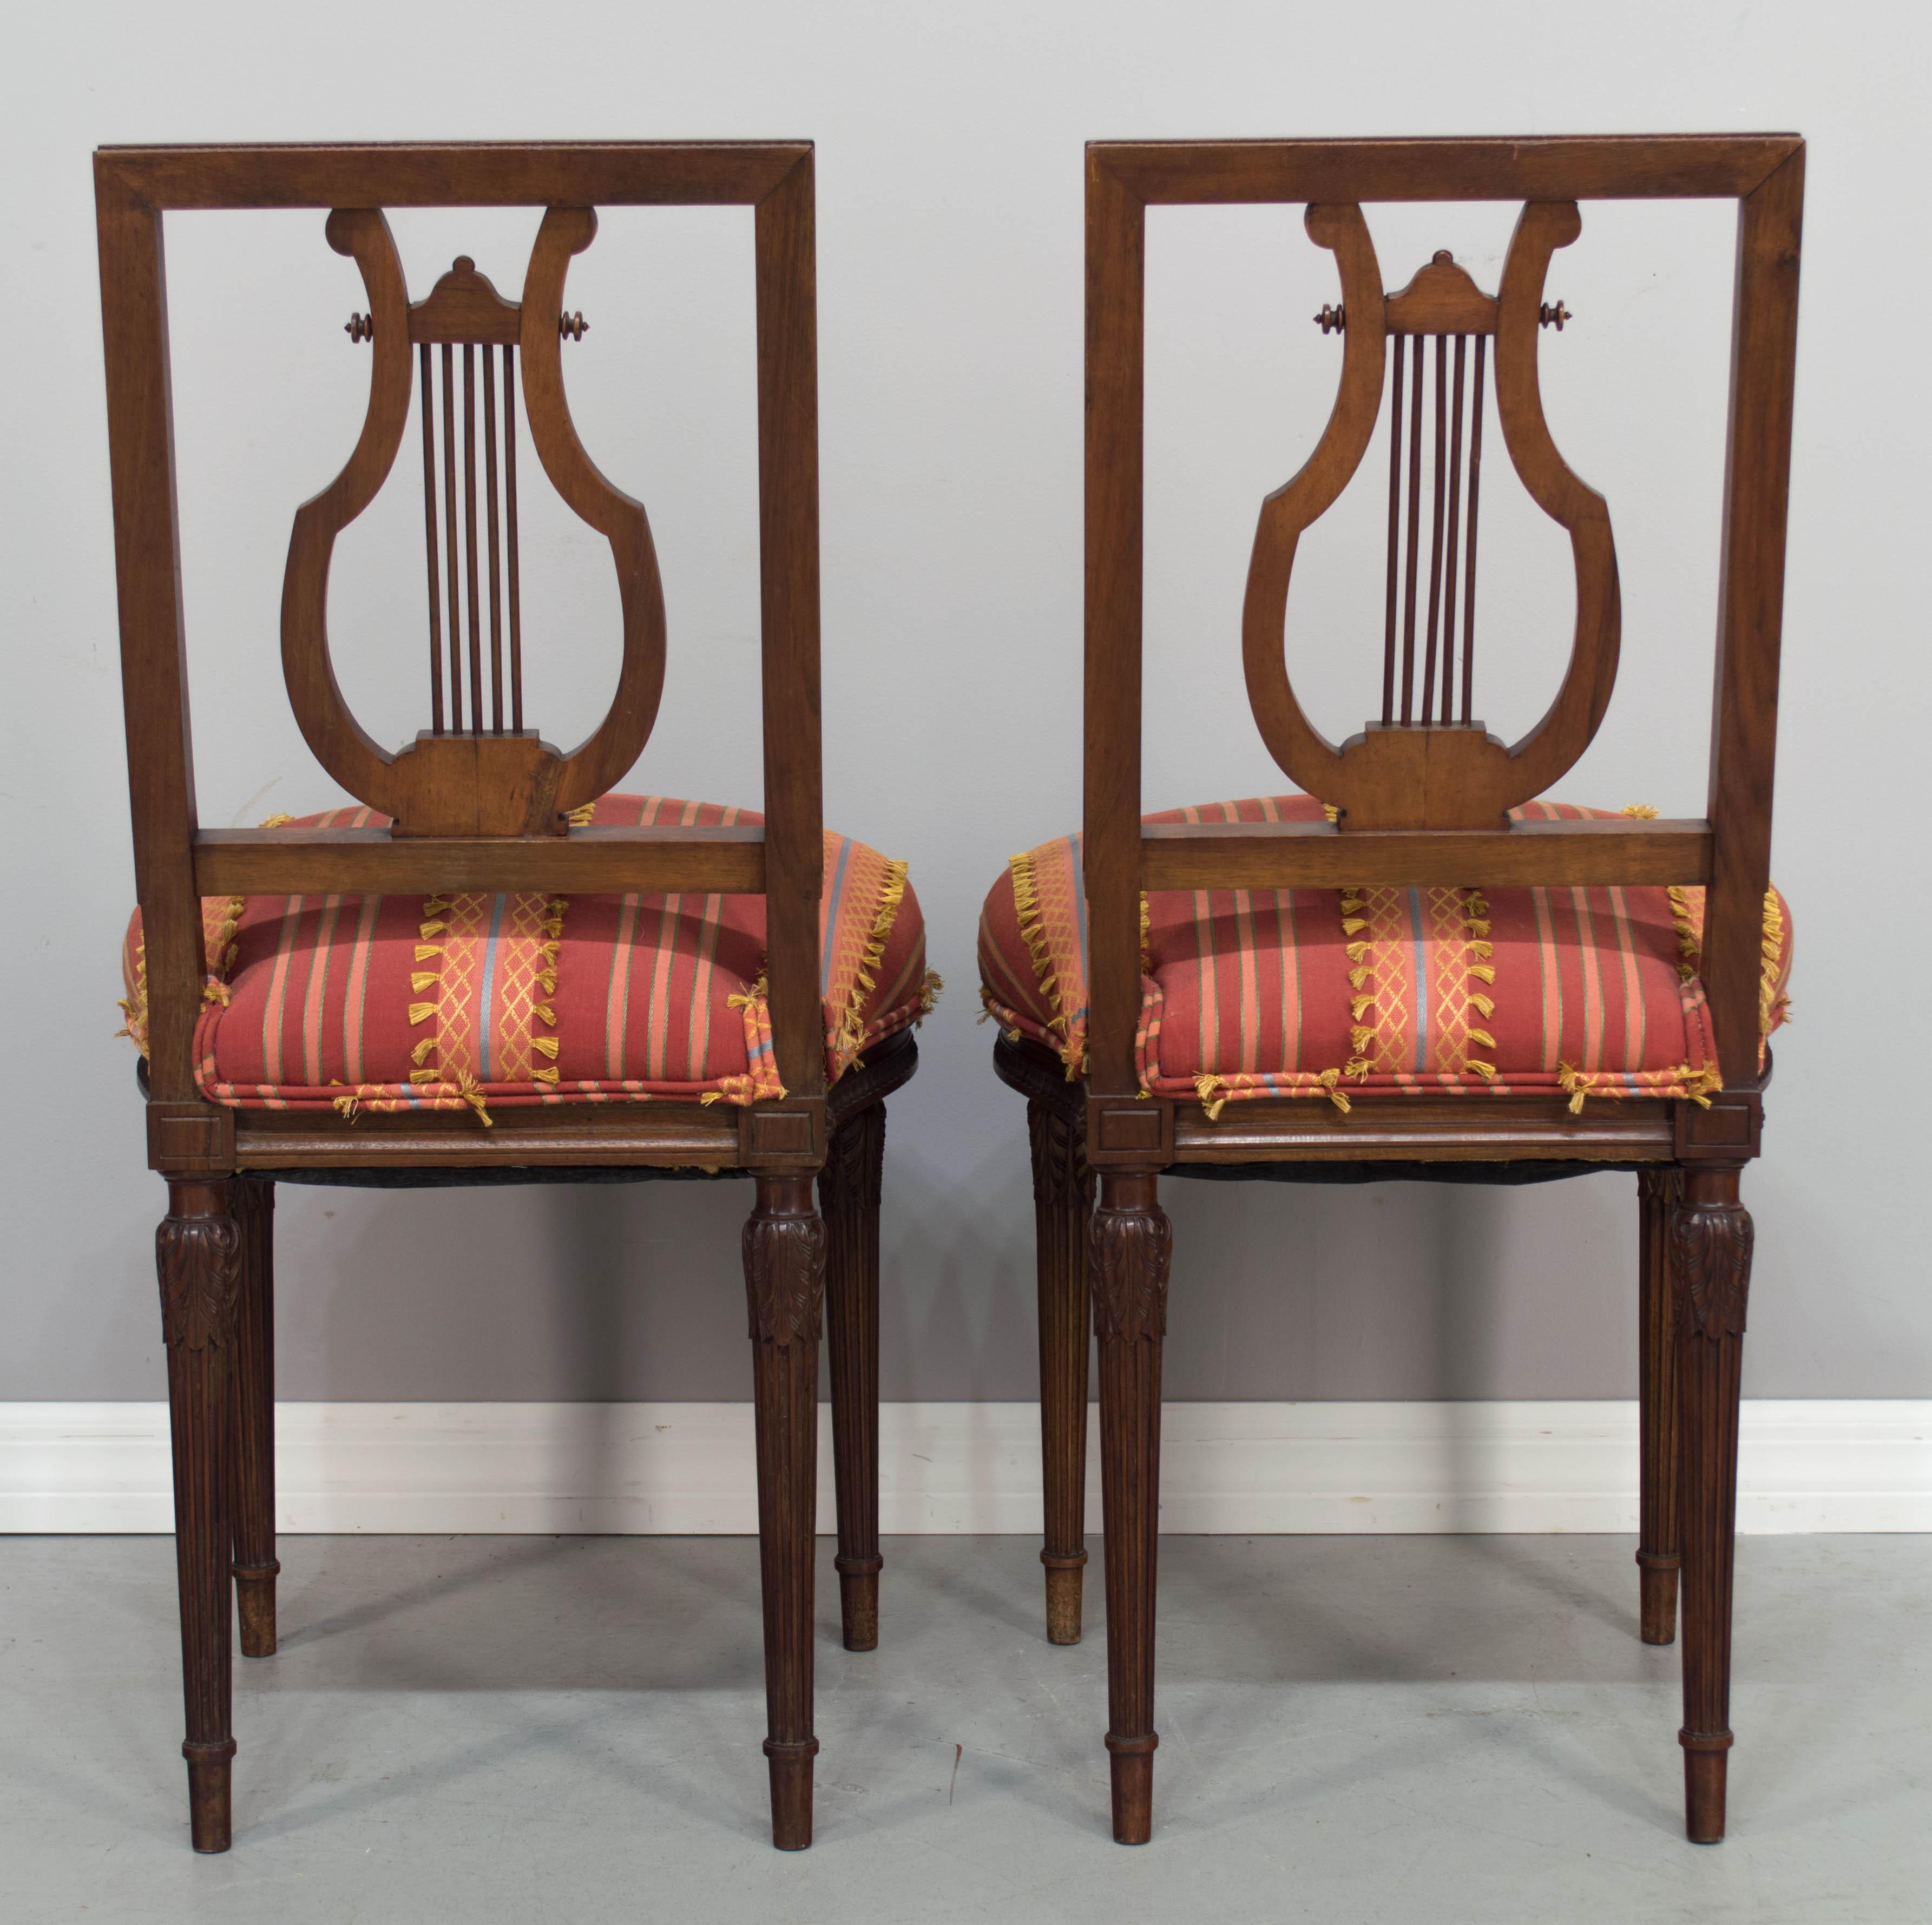 Late 19th Century Antique Louis XVI Style Parlor Chairs   A Pair For Sale    Image